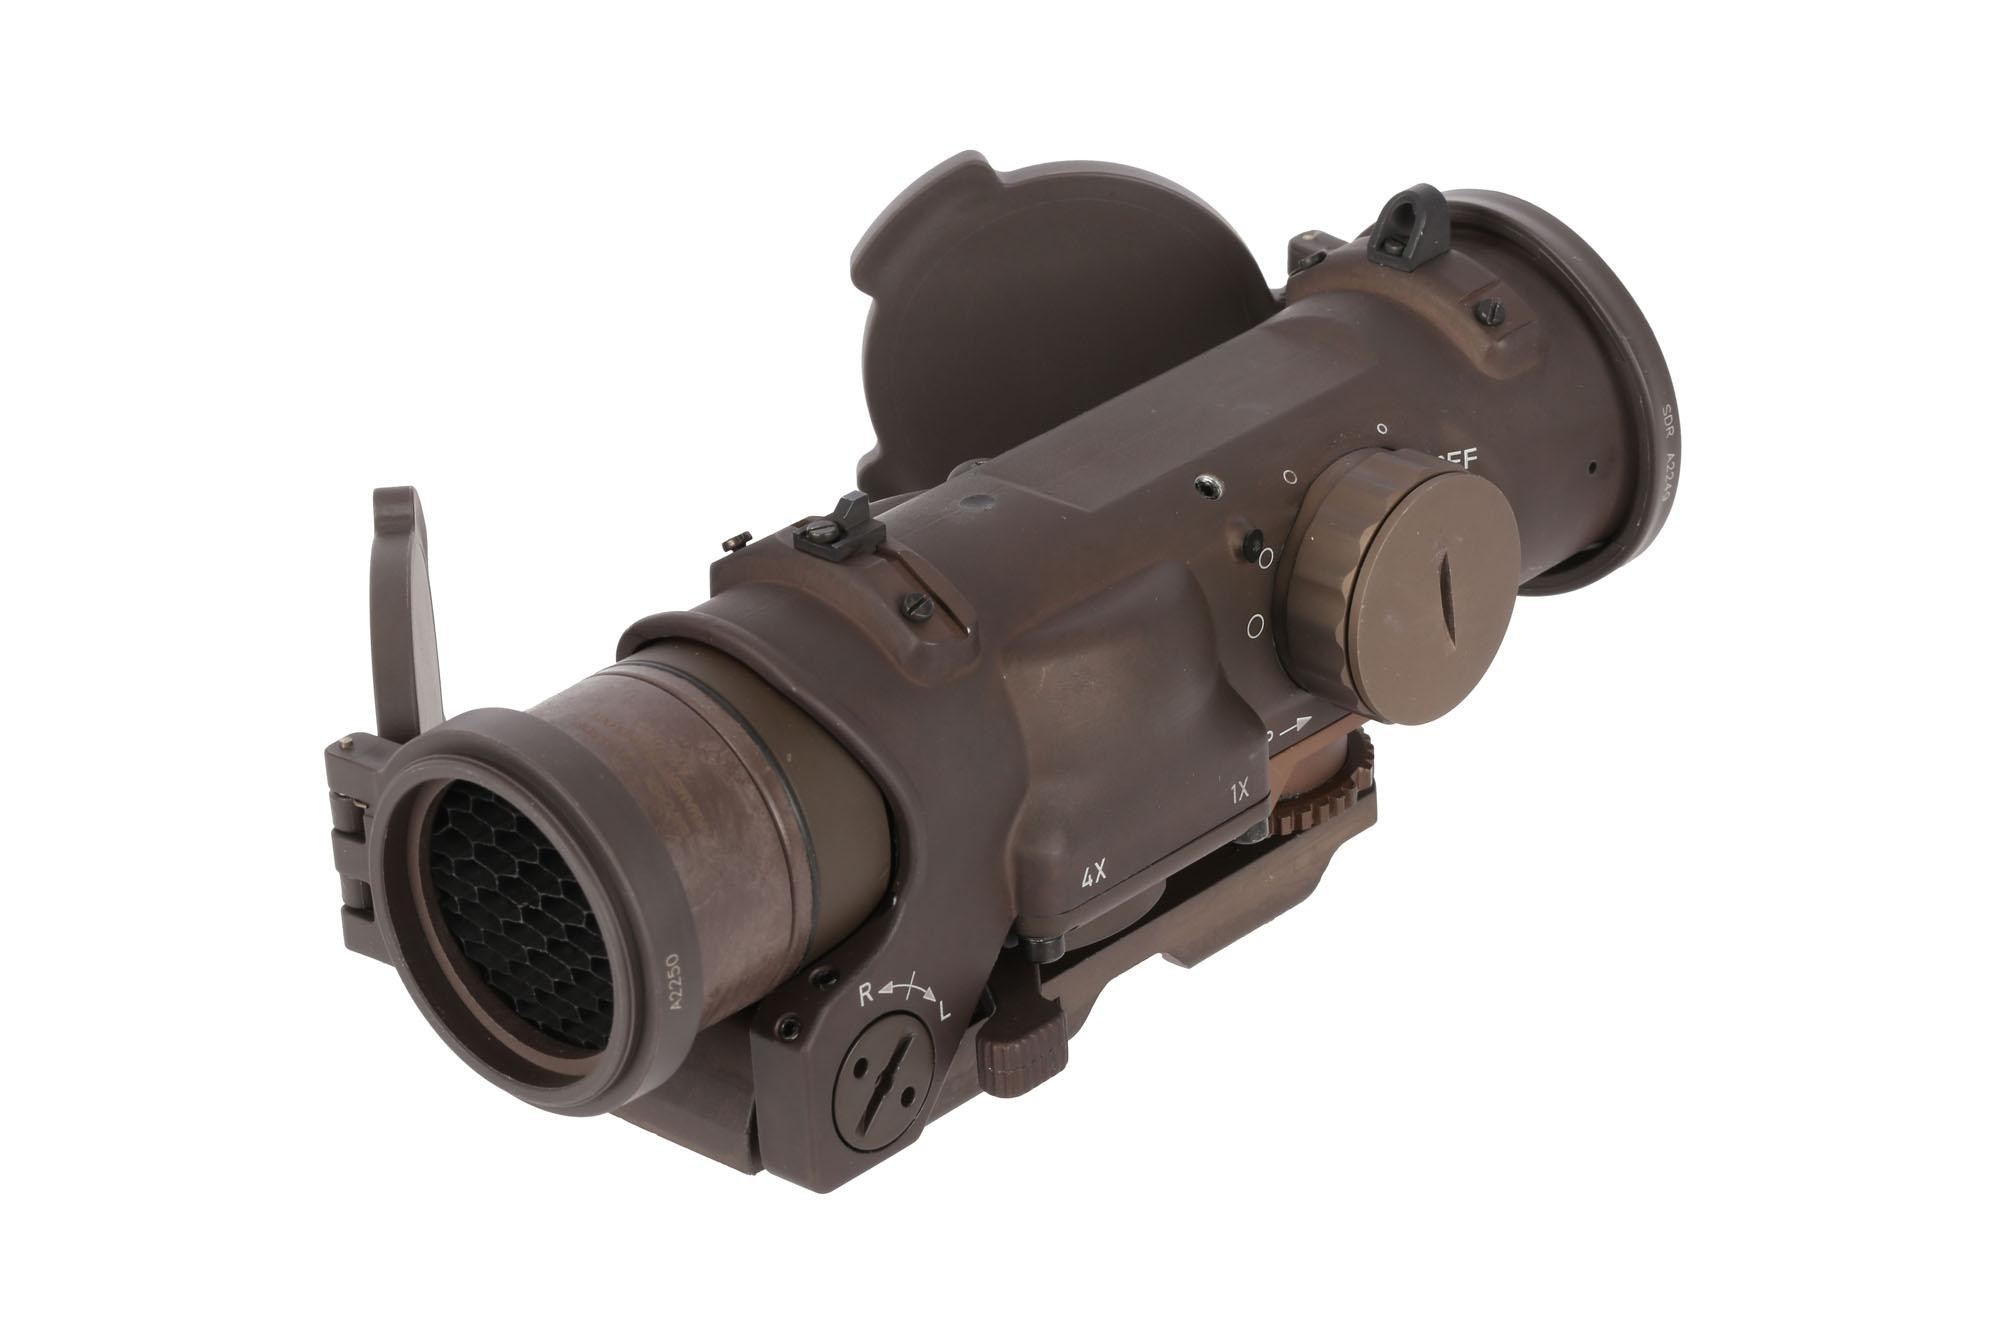 ELCAN SpecterDR Dual Role 1x/4x 5.56 Optical Sight - Flat Dark Earth